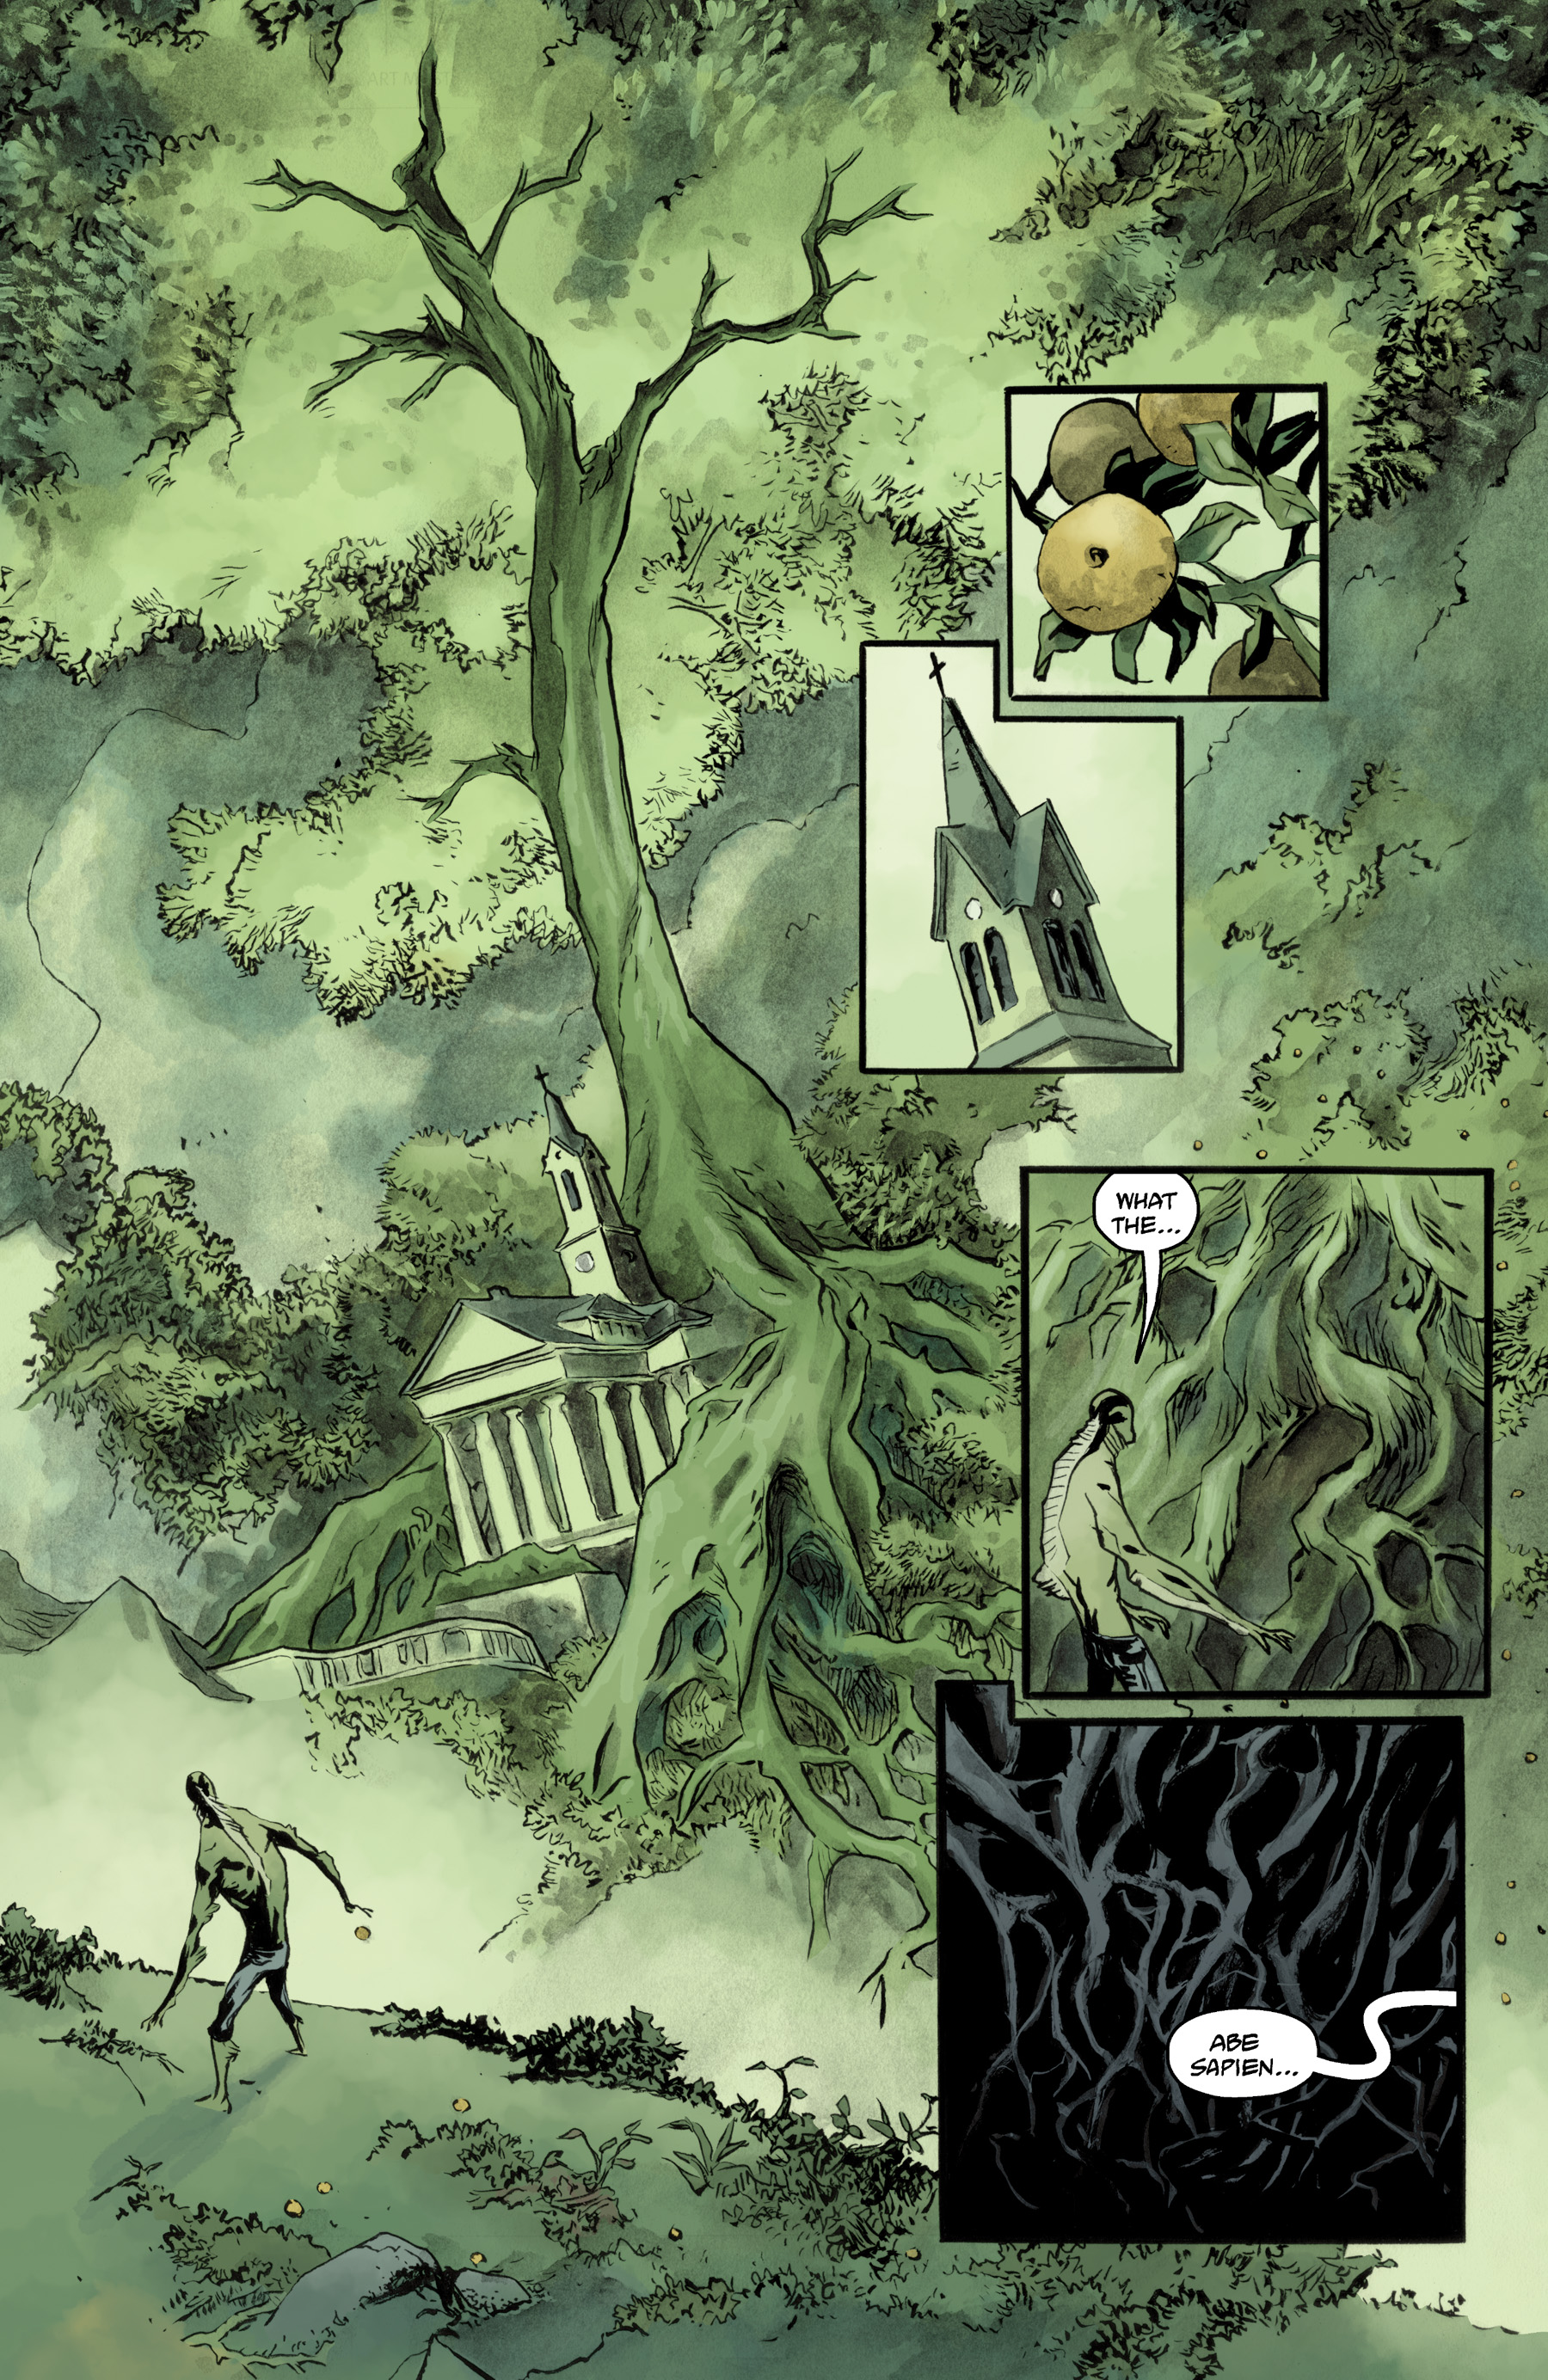 Read online Abe Sapien comic -  Issue #35 - 13